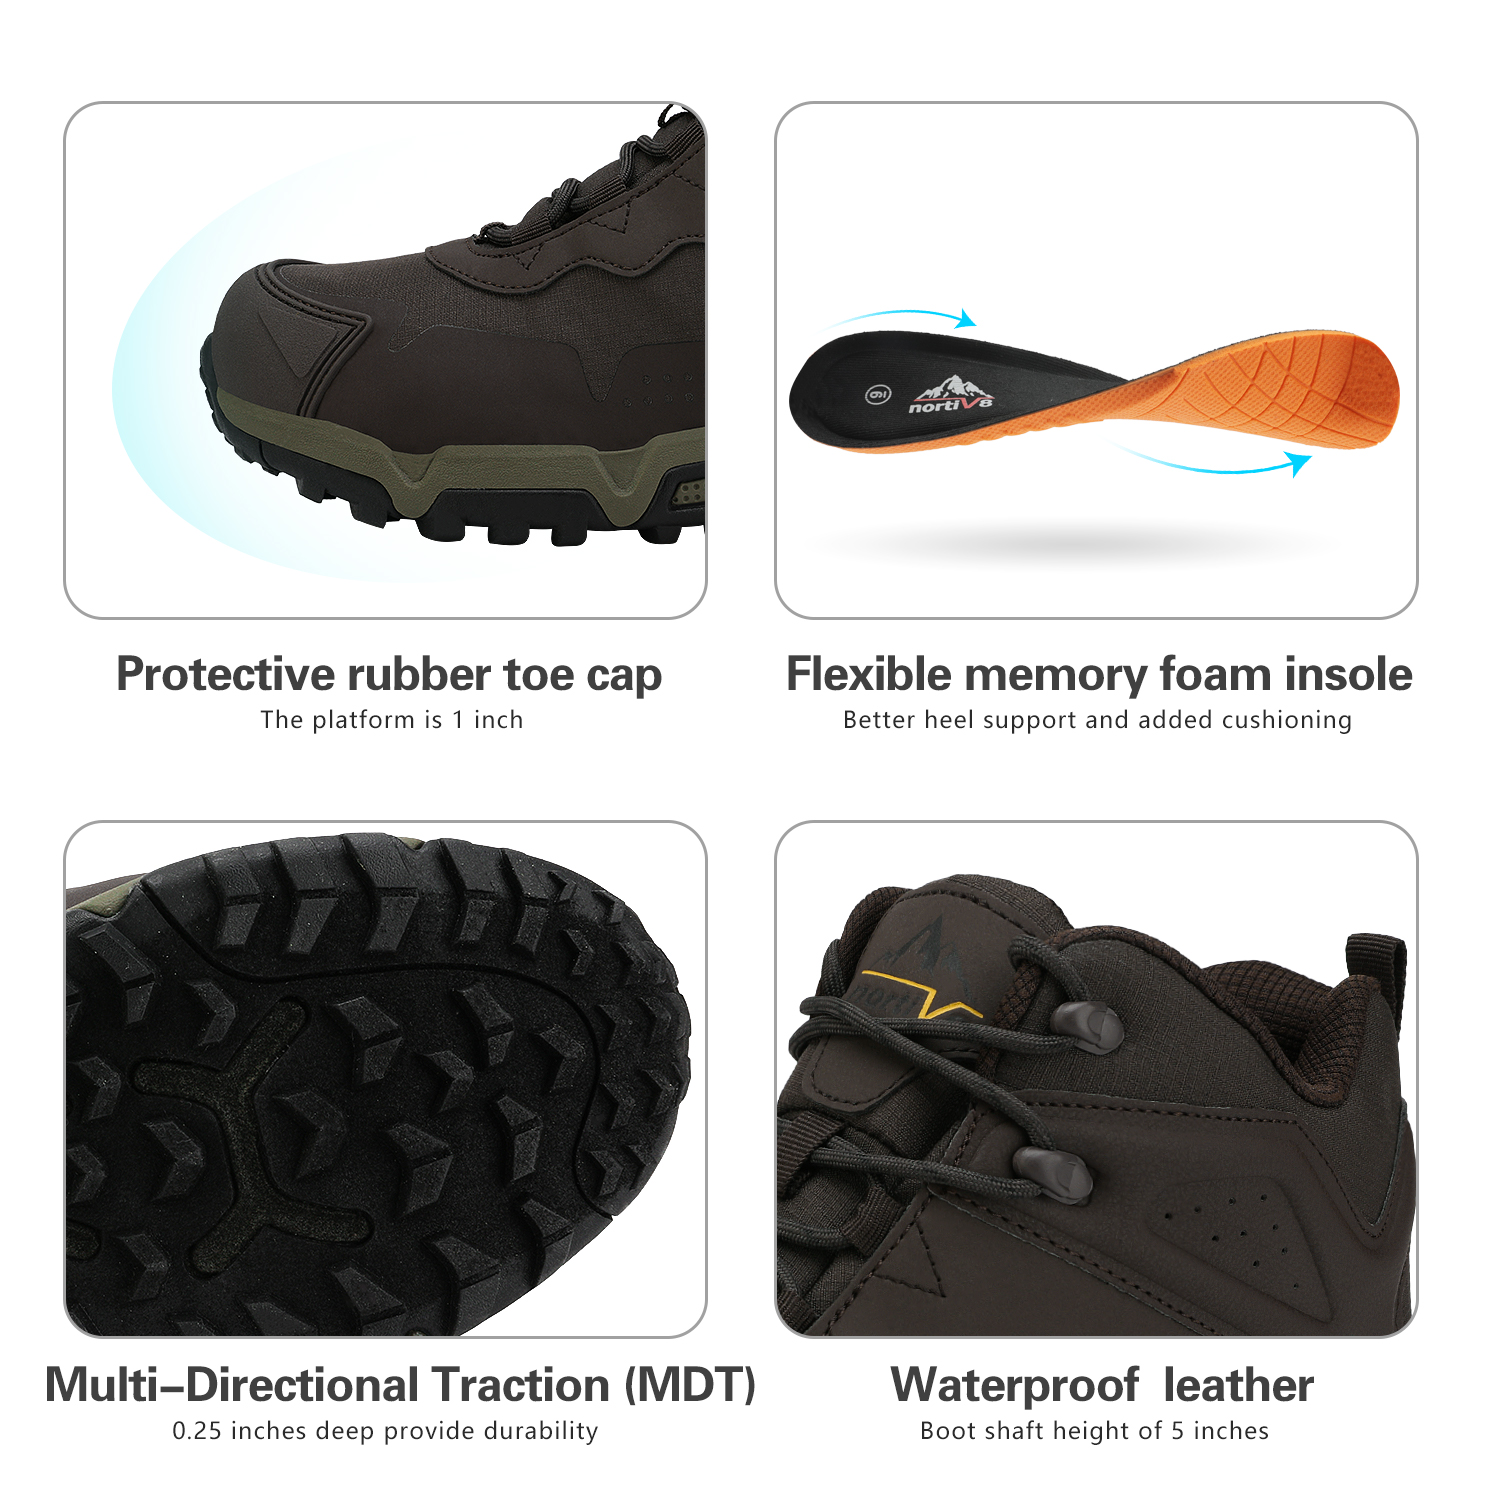 NORTIV-8-Men-039-s-Ankle-Waterproof-Hiking-Boots-Lightweight-Backpacking-Work-Shoes thumbnail 10